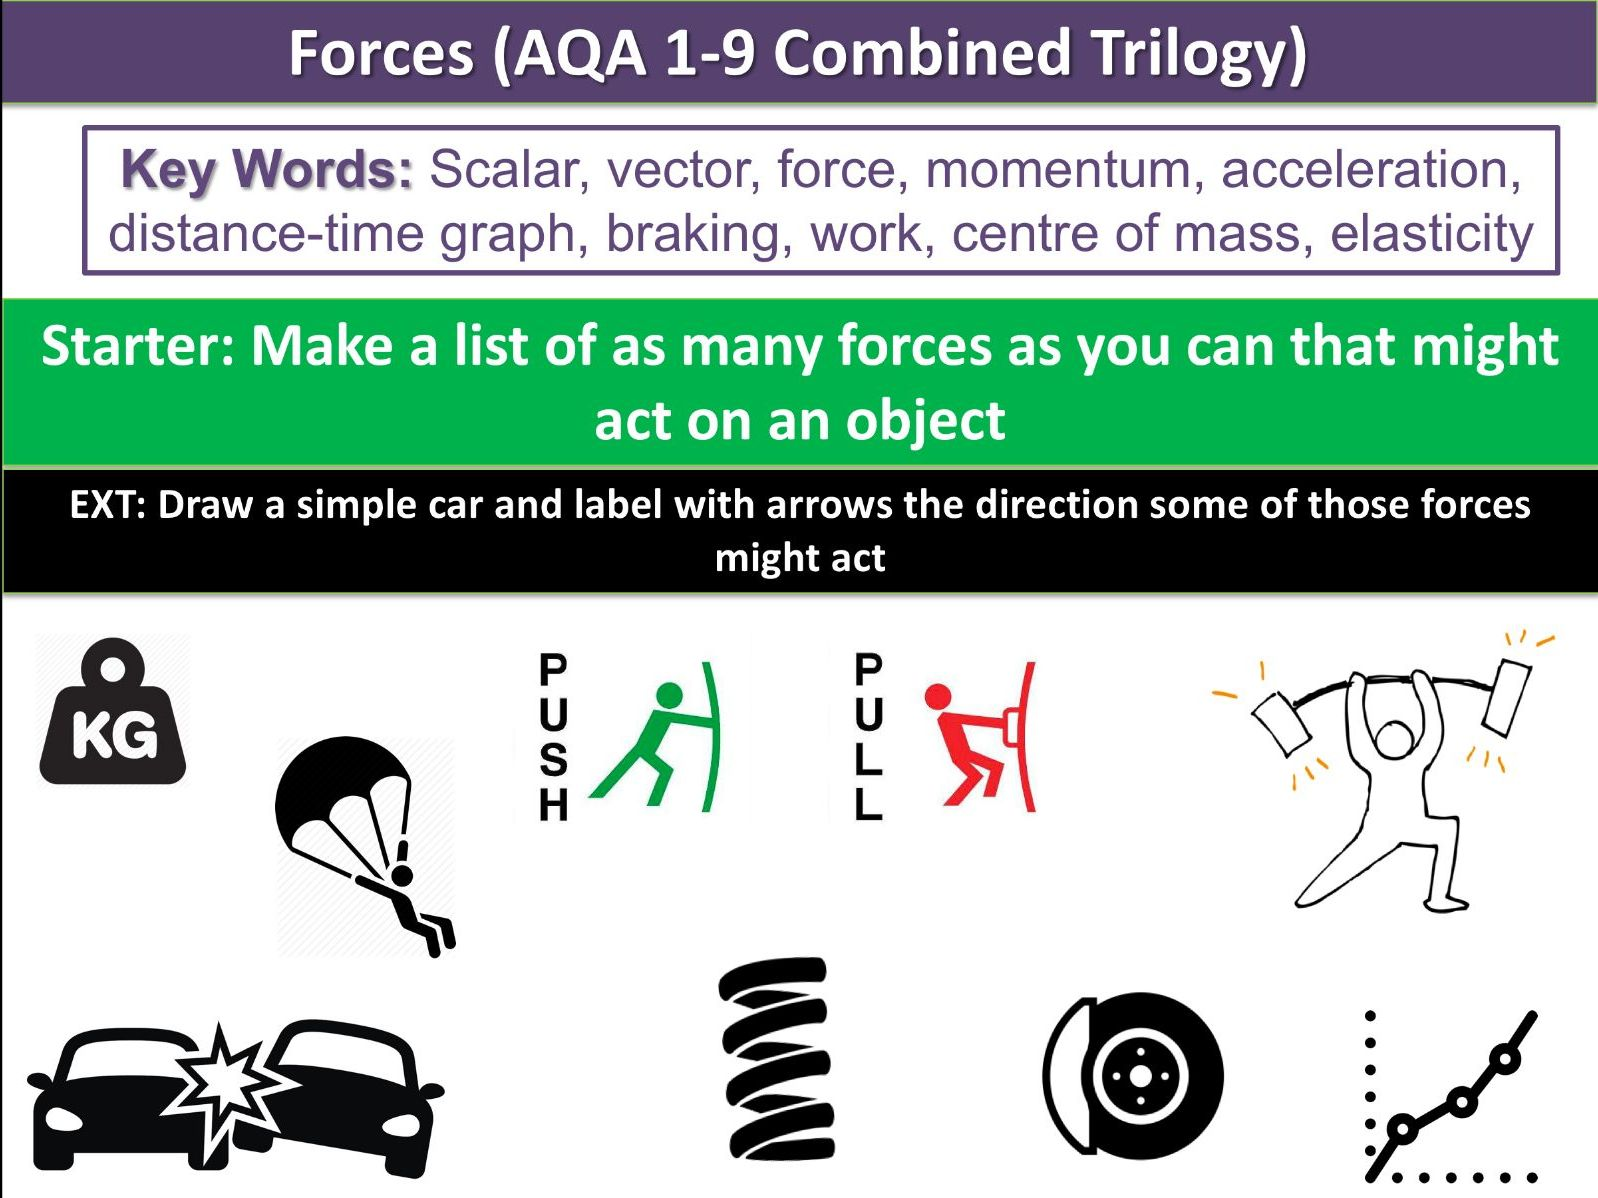 Forces (AQA 1-9 Combined Trilogy)